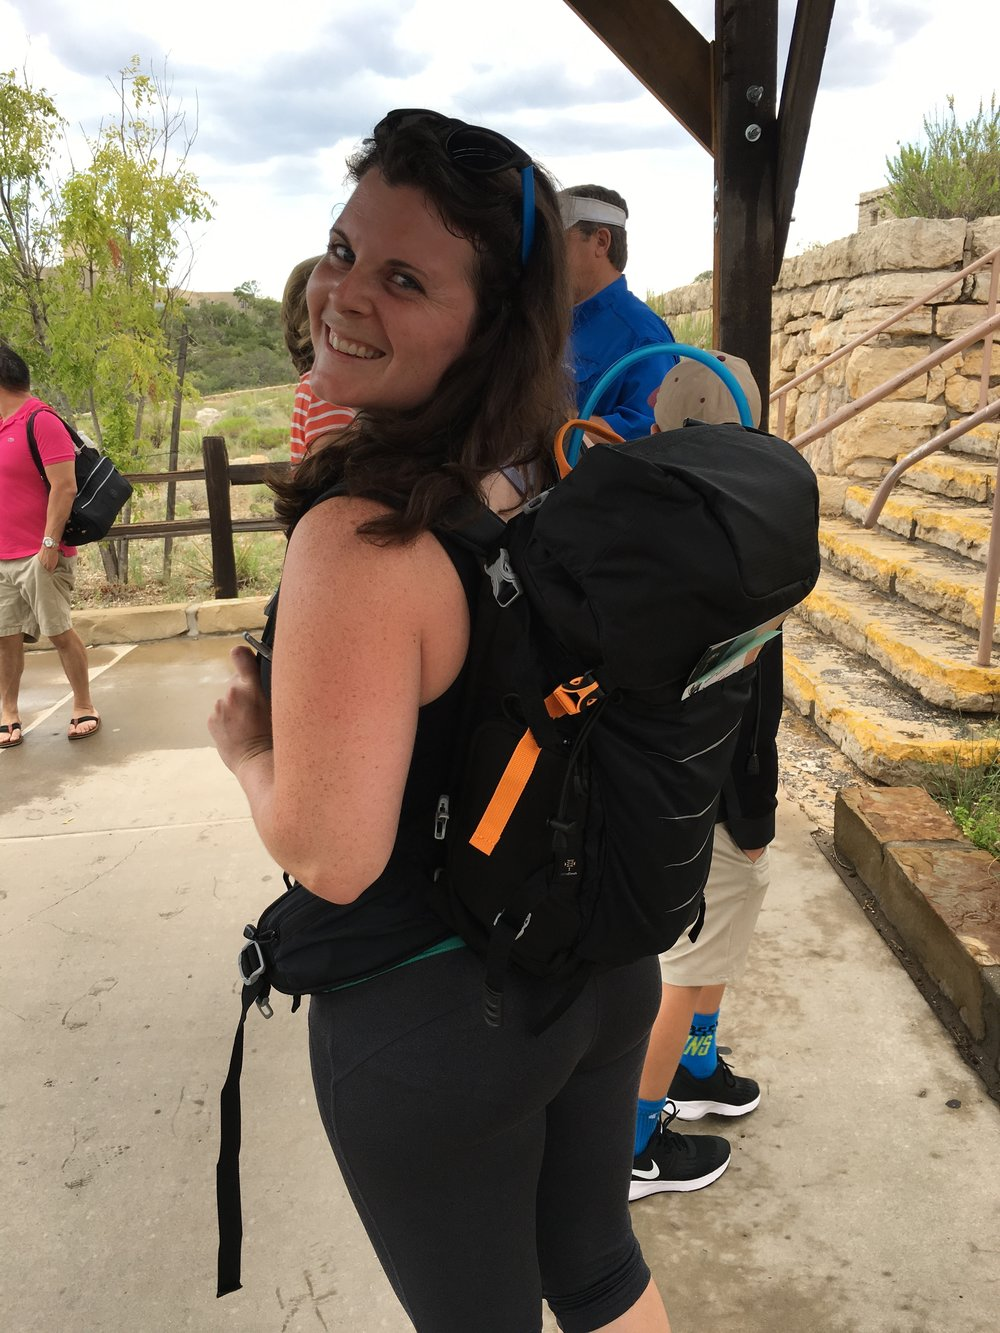 Carlsbad Caverns bound in New Mexico! My pack came with me everywhere on this trip! Even to the South Rim of the Grand Canyon - below!